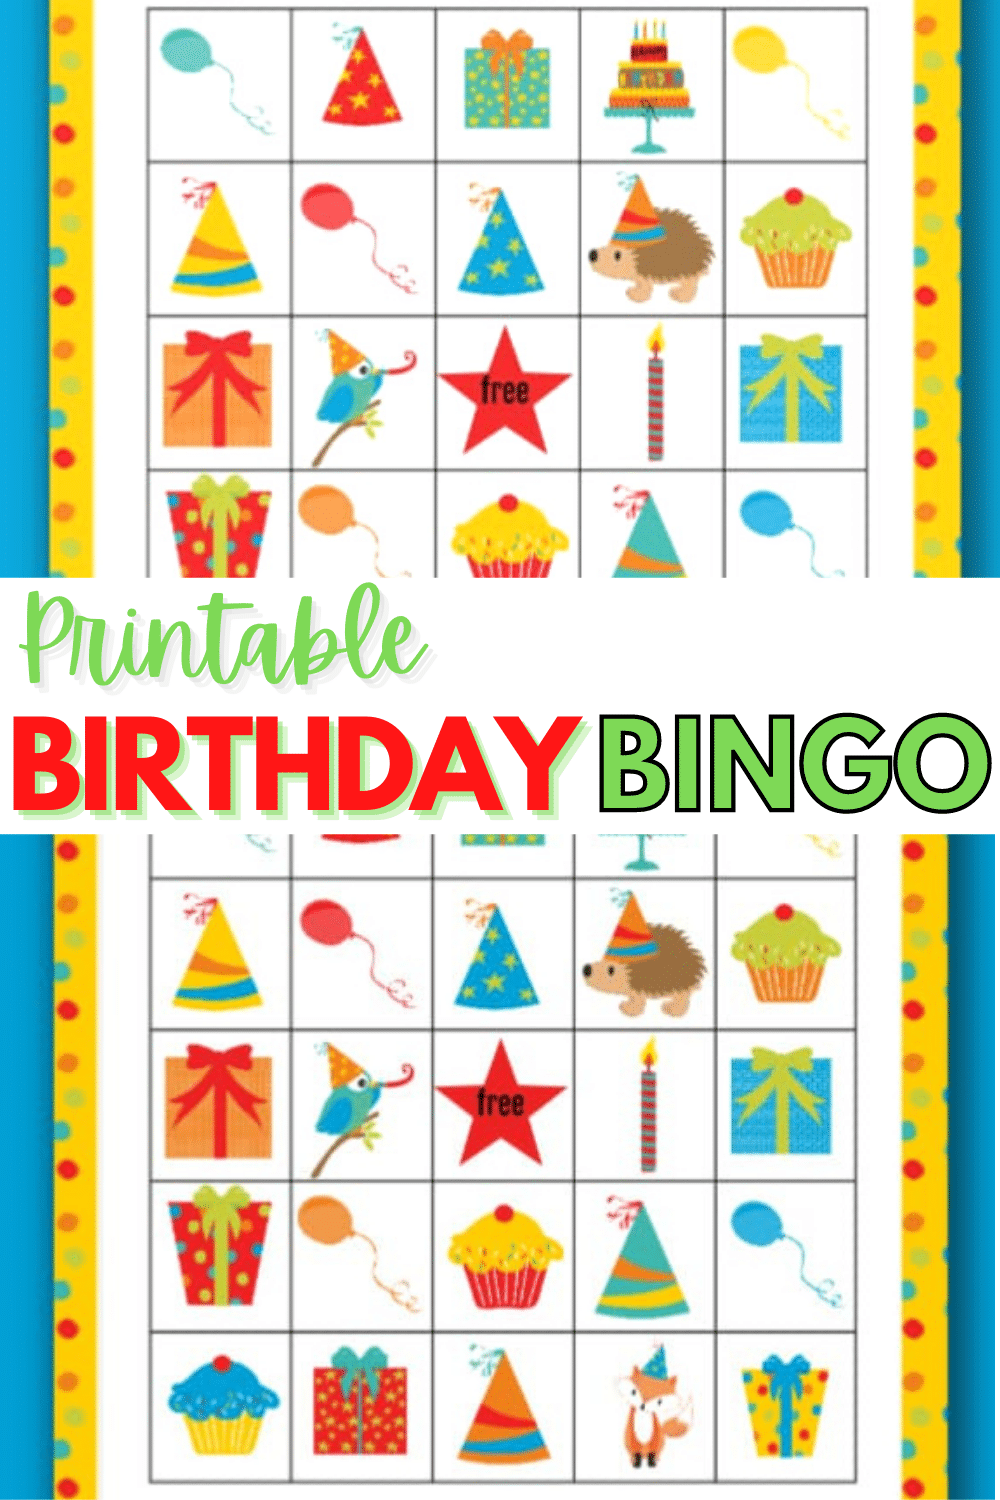 Printable birthday bingo cards are a fun way to keep kids entertained at a home birthday party. These brightly colored cards are perfect for boys or girls. #bingo #printables #birthdayparties via @wondermomwannab